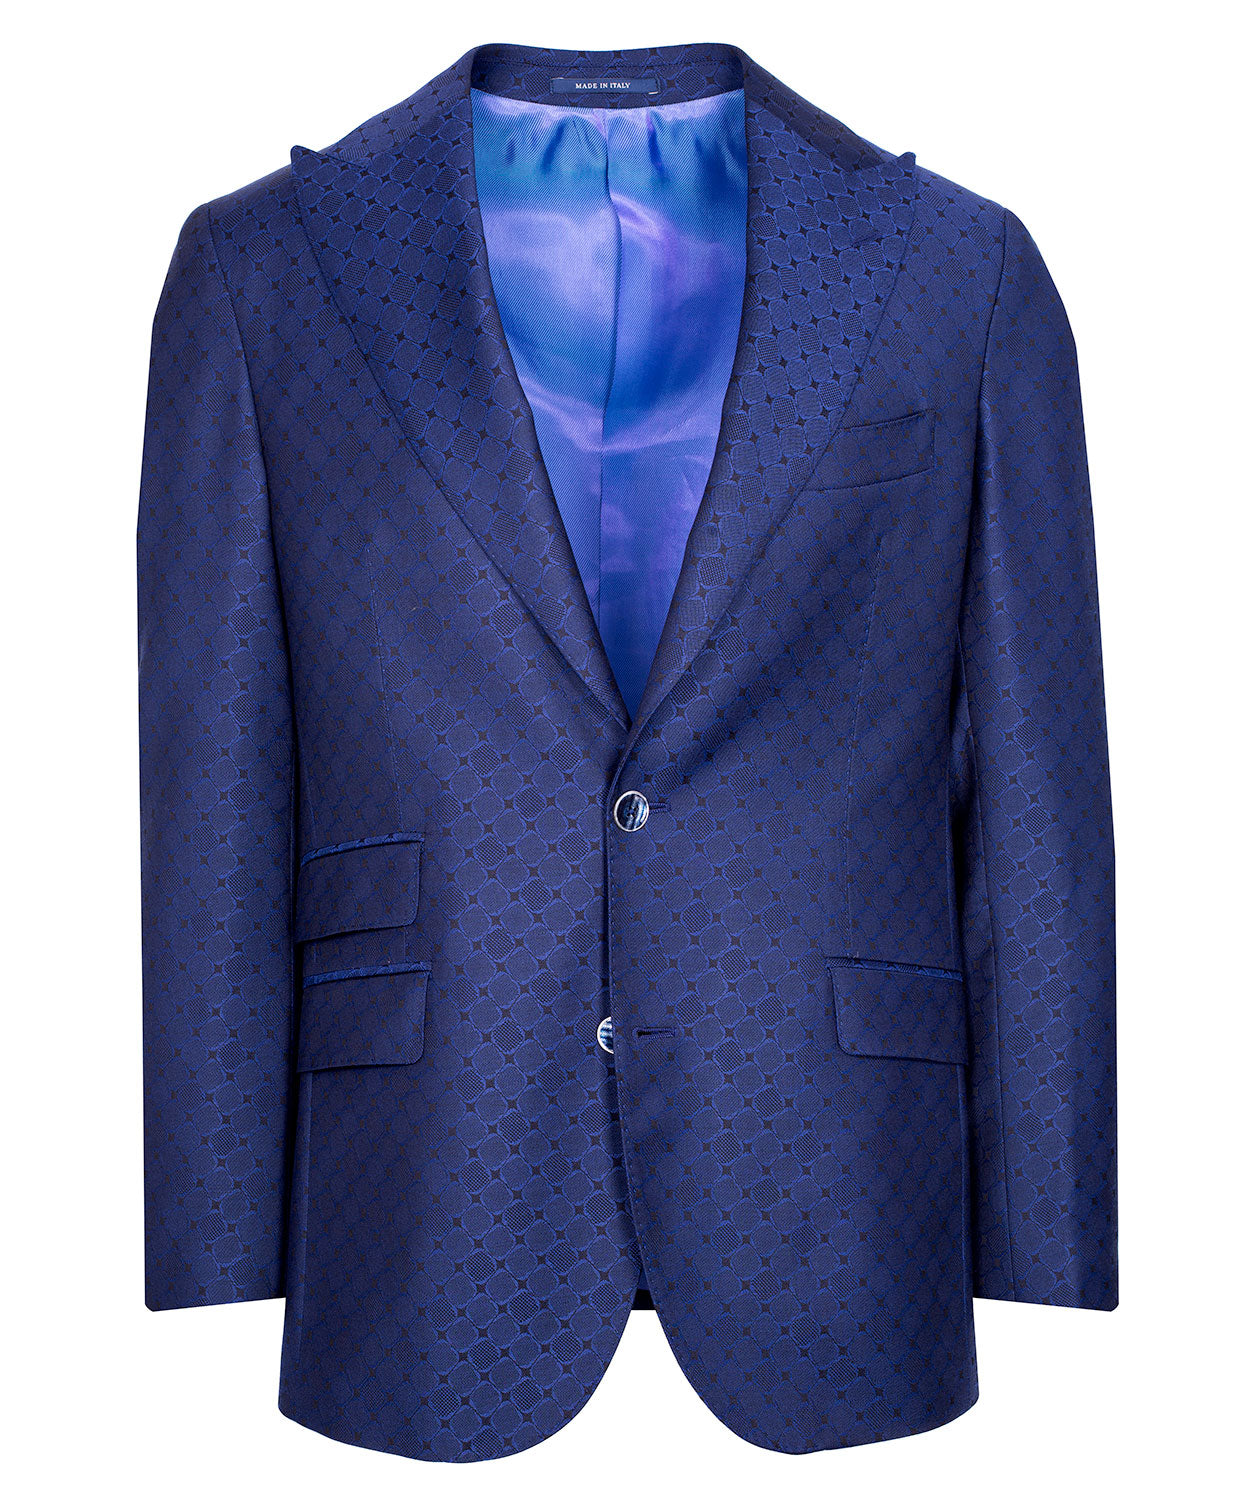 Ethan Royal Blue Tonal Woven Diamond Satine Event Jacket